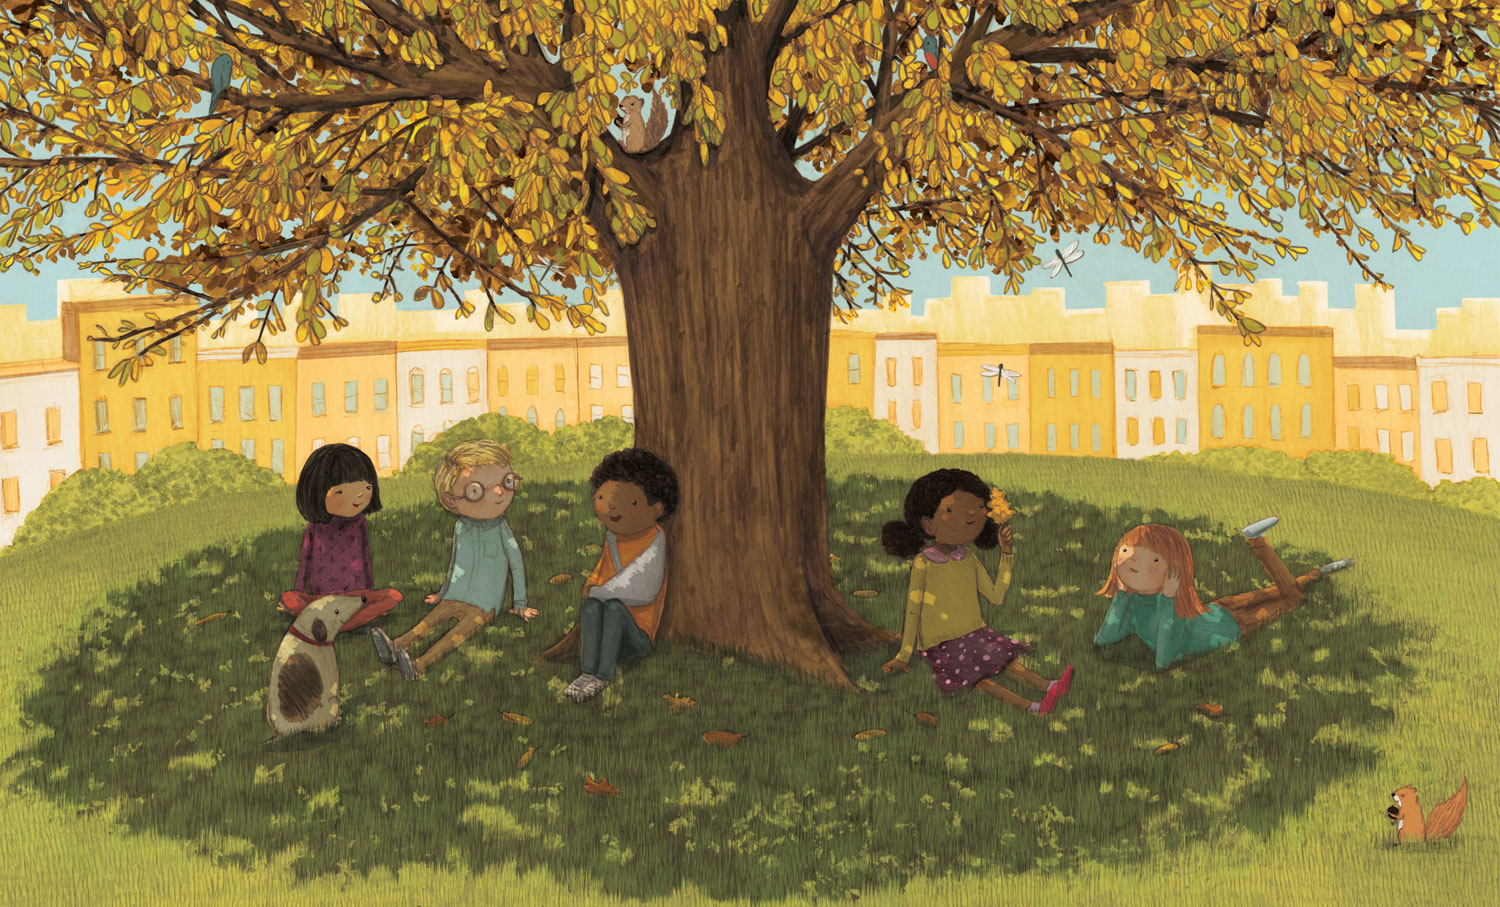 celebrate-picture-books-picture-book-review-peace-is-an-offering-under-tree